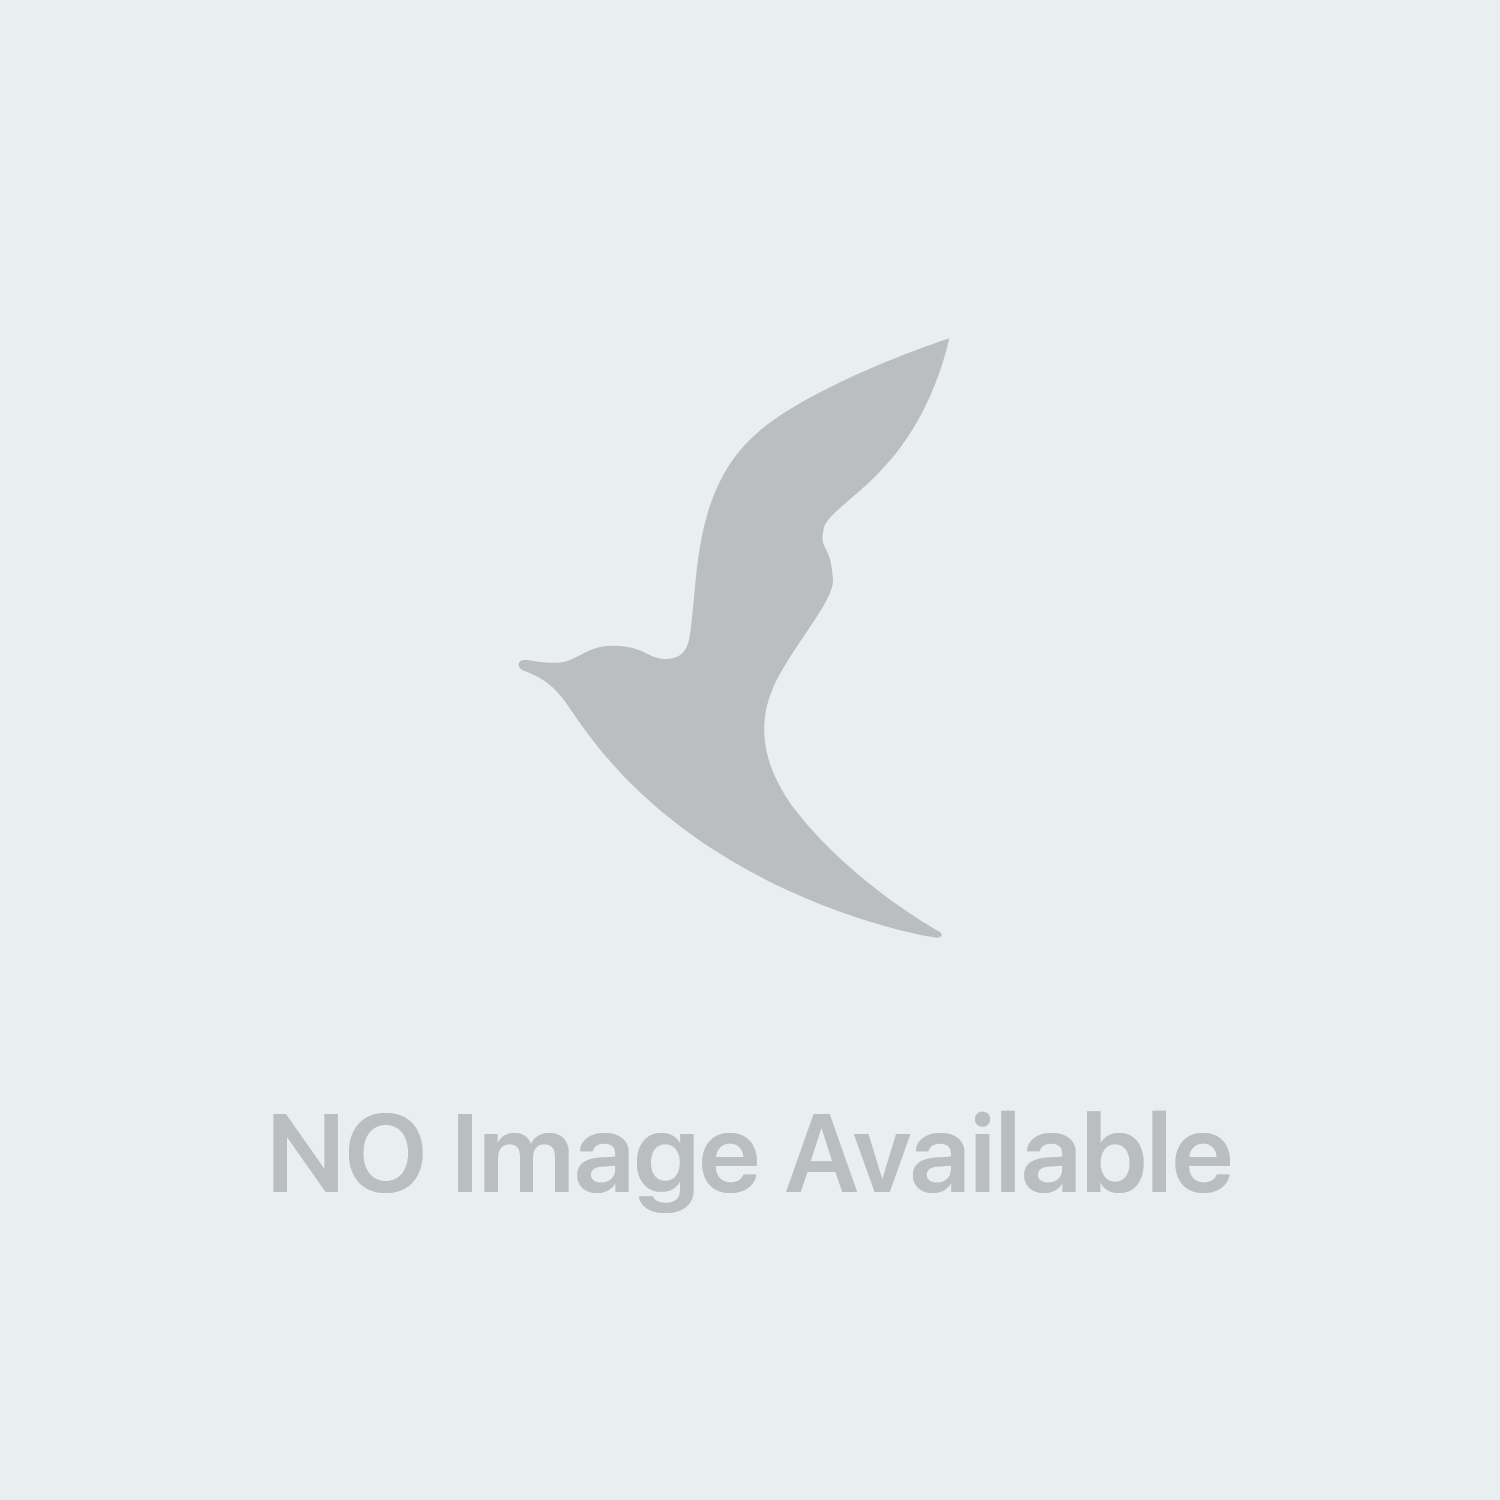 Enerzona Mini Rock Cioccolato 1 Busta 24 Gr